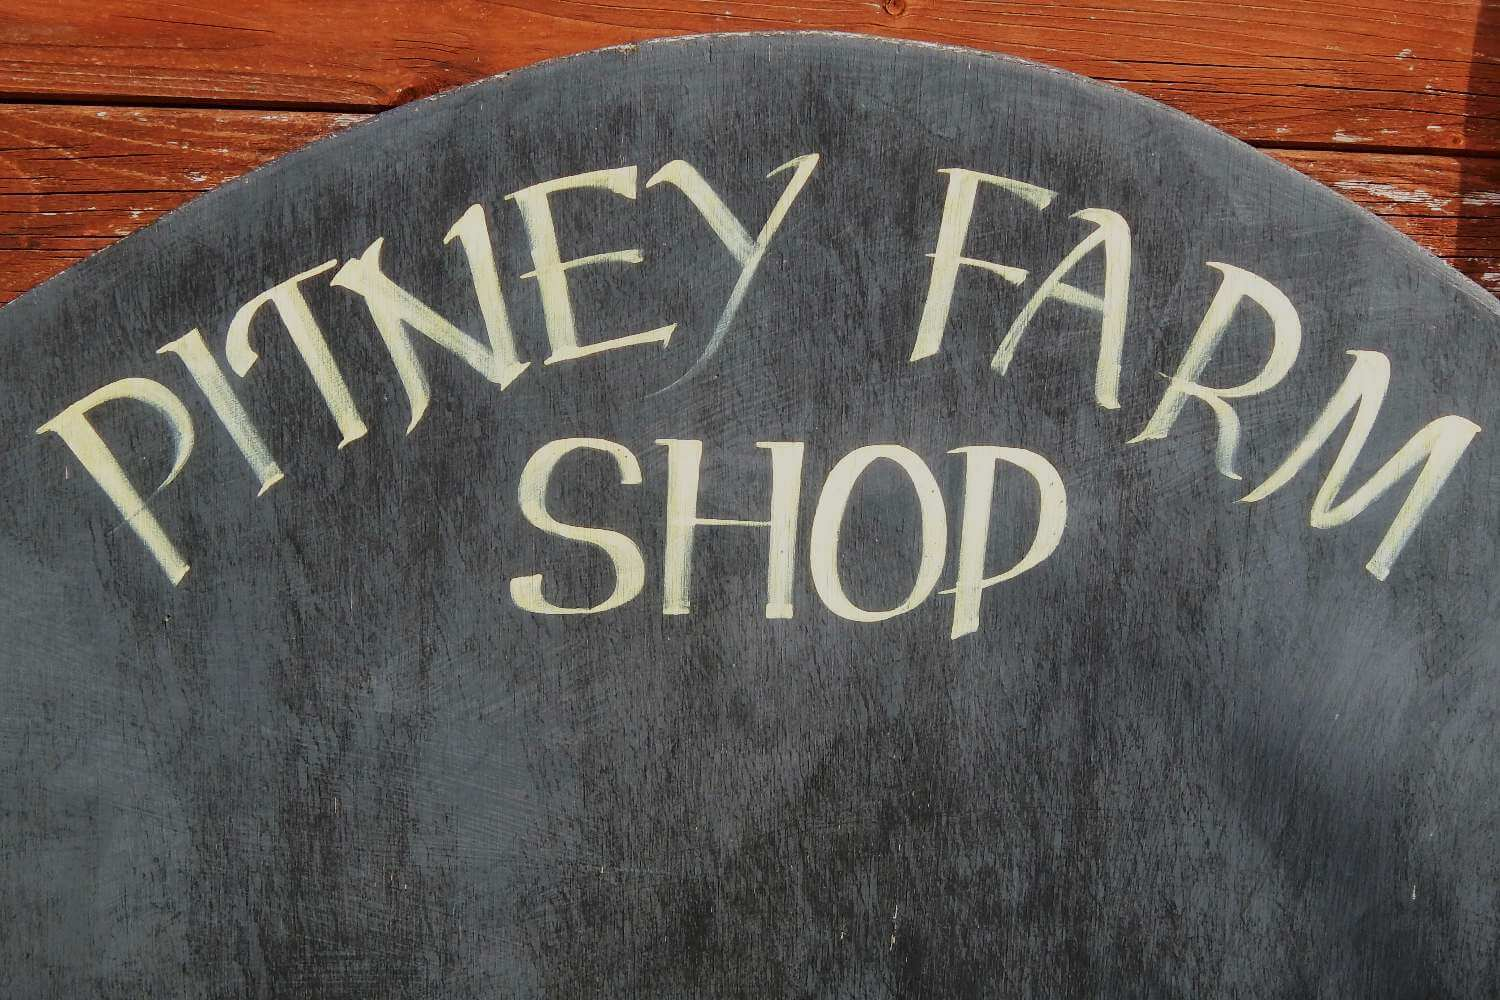 Hand-painted sign for Pitney Farm Shop